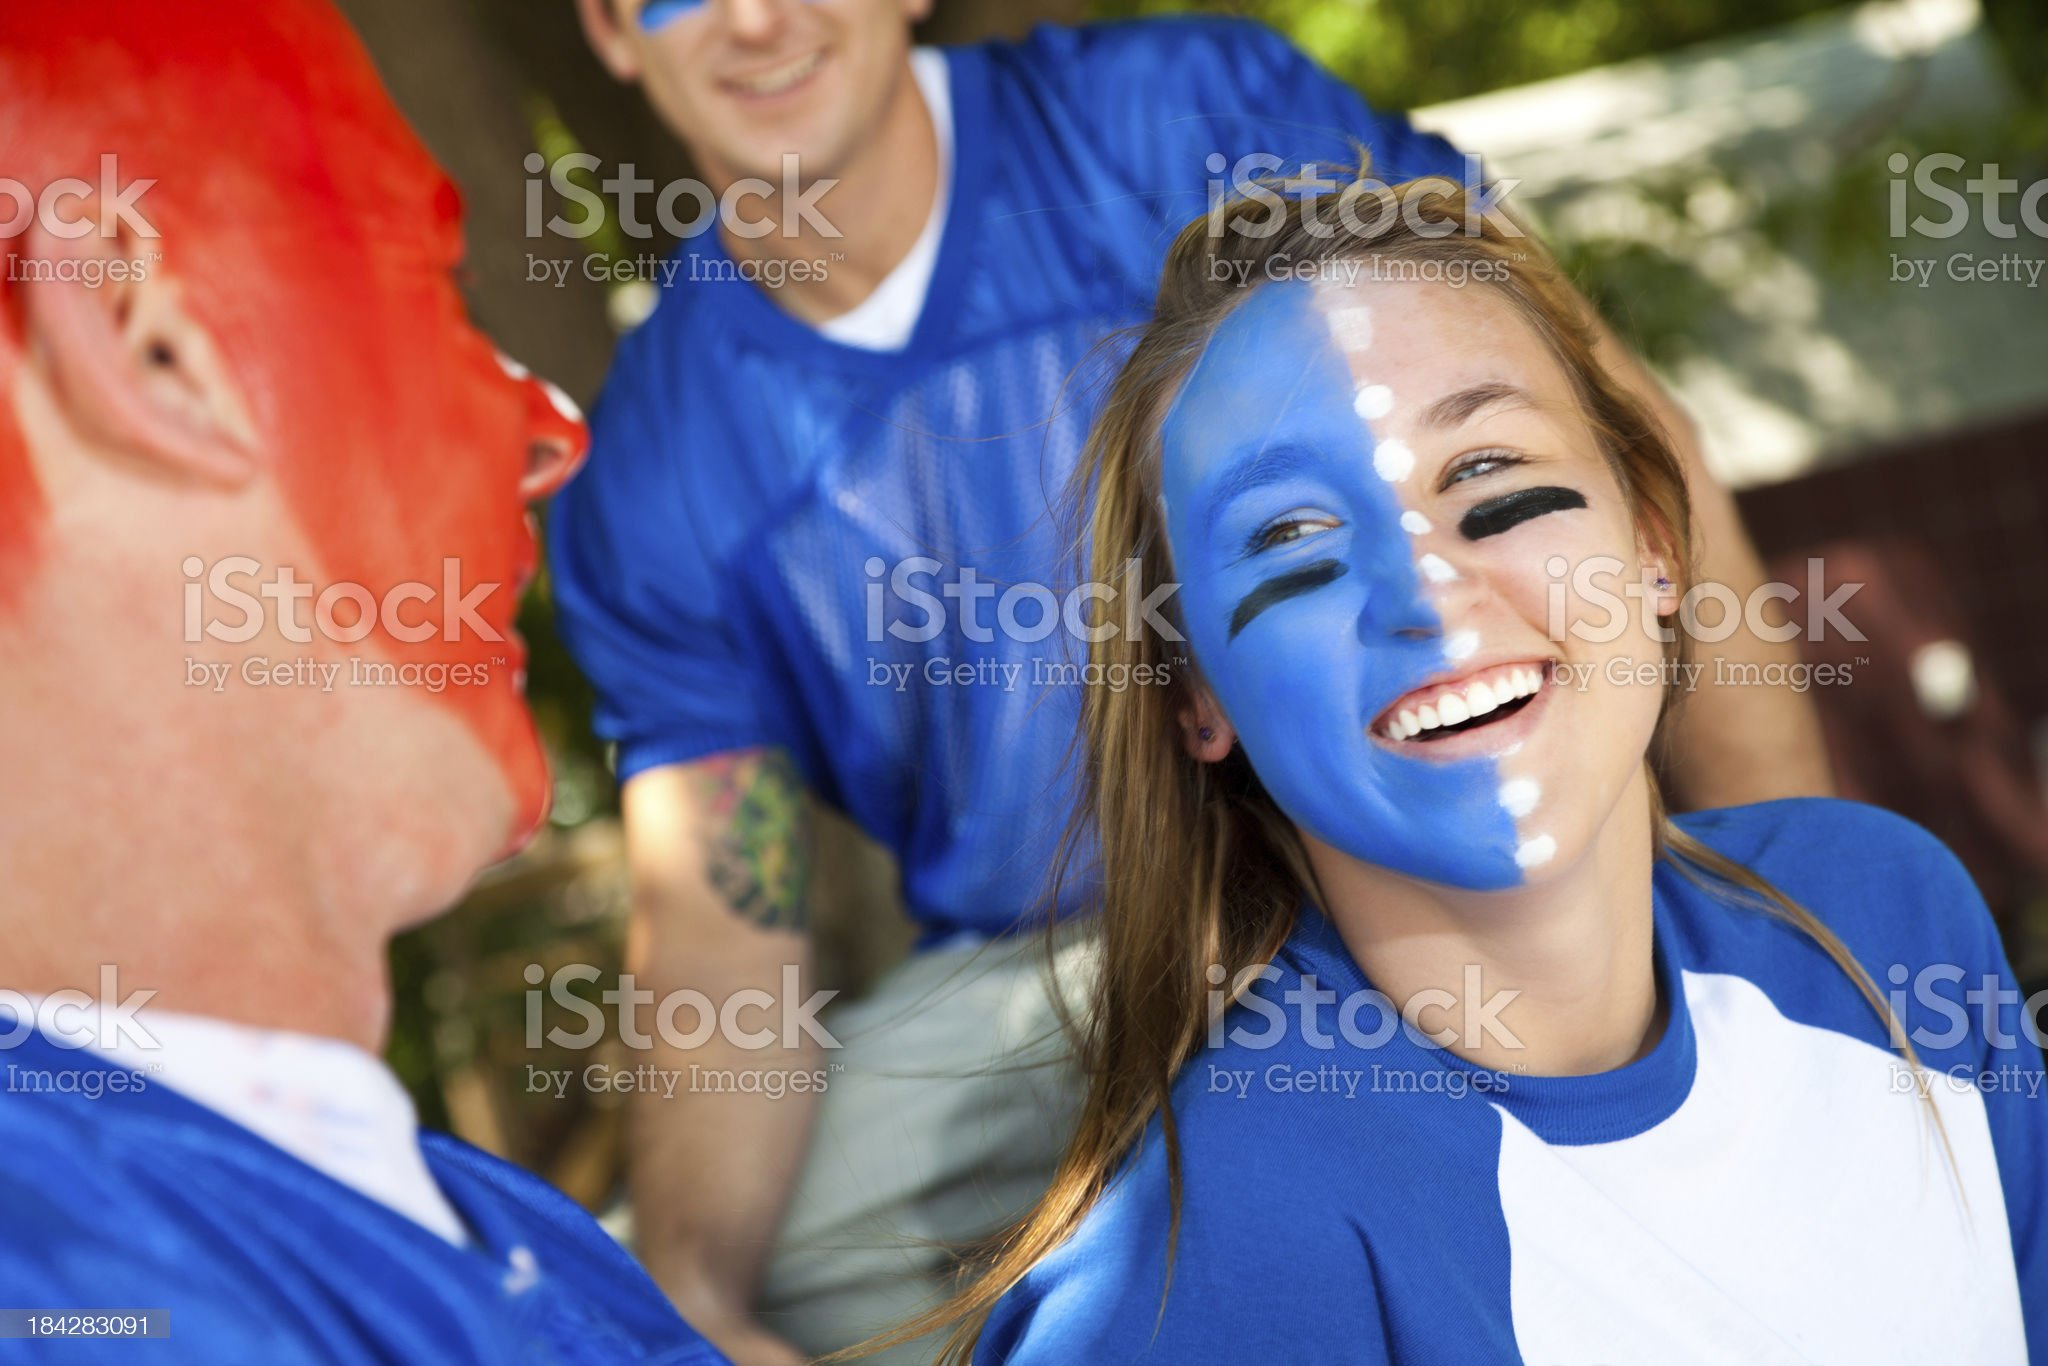 Sports fans with painted faces laughing at tailgate party. royalty-free stock photo